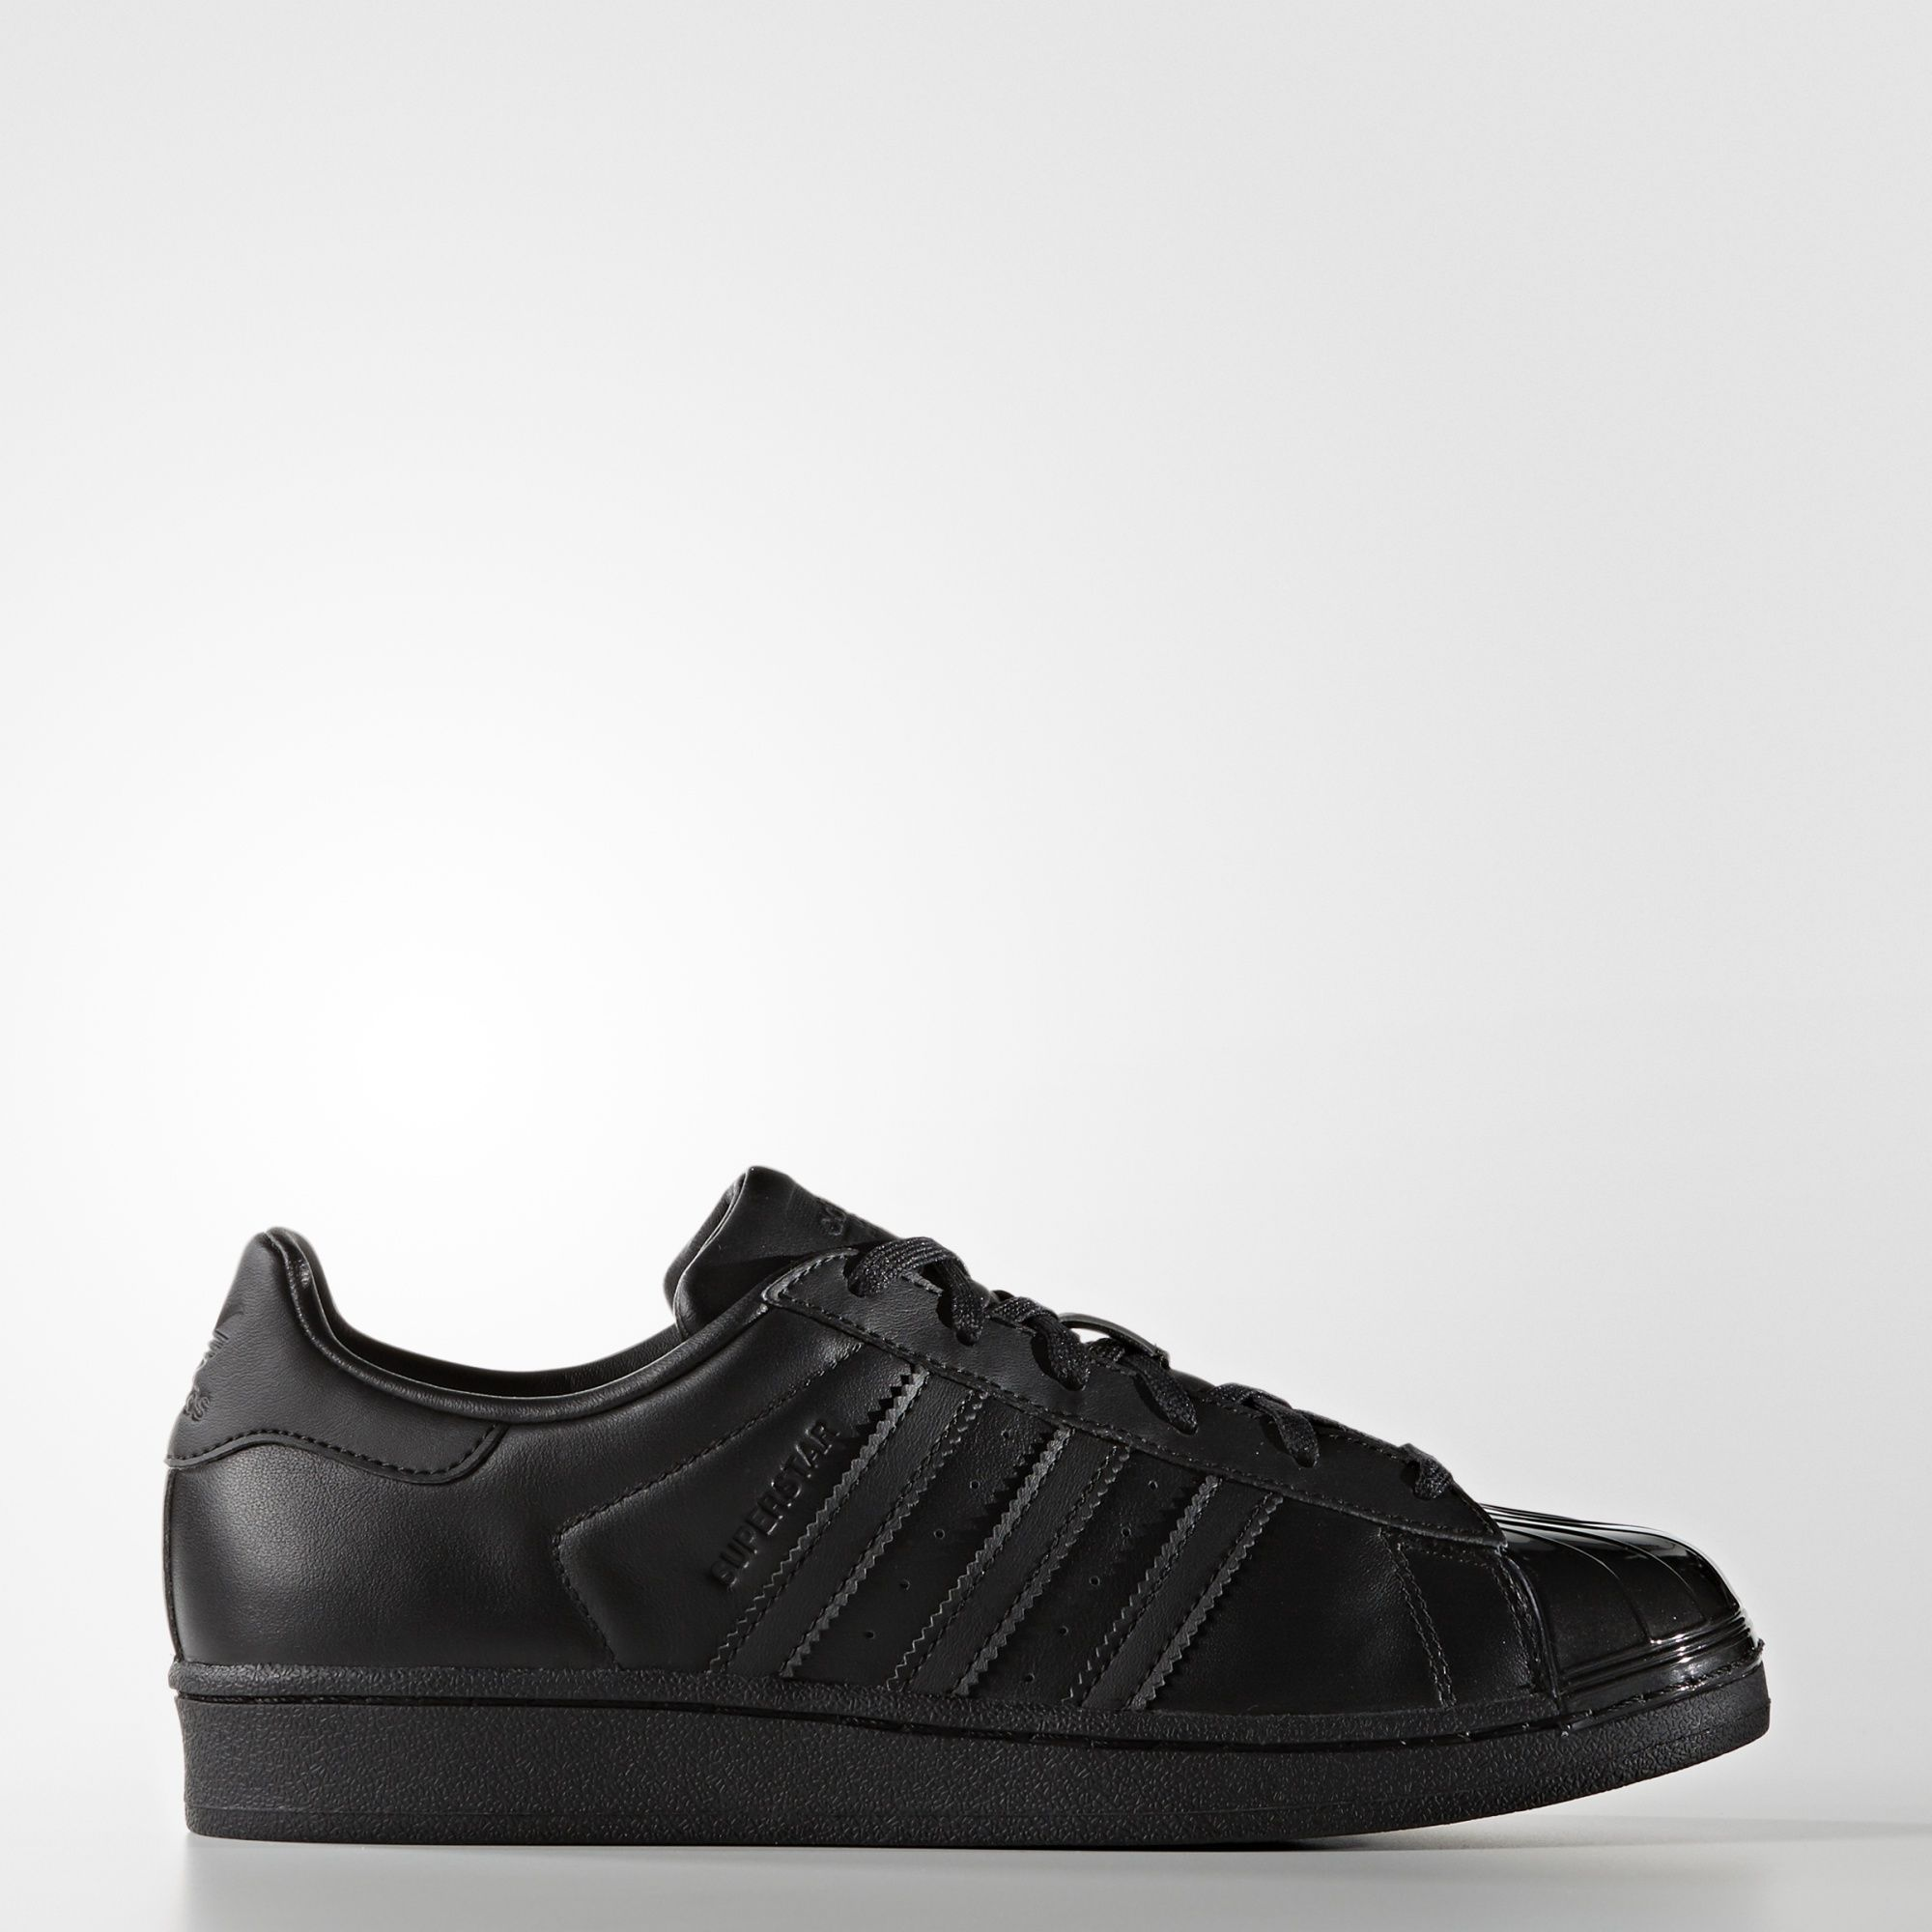 Adidas Buty Superstar Shoes Adidas Shoes Superstar Adidas Superstar Adidas Superstar Black